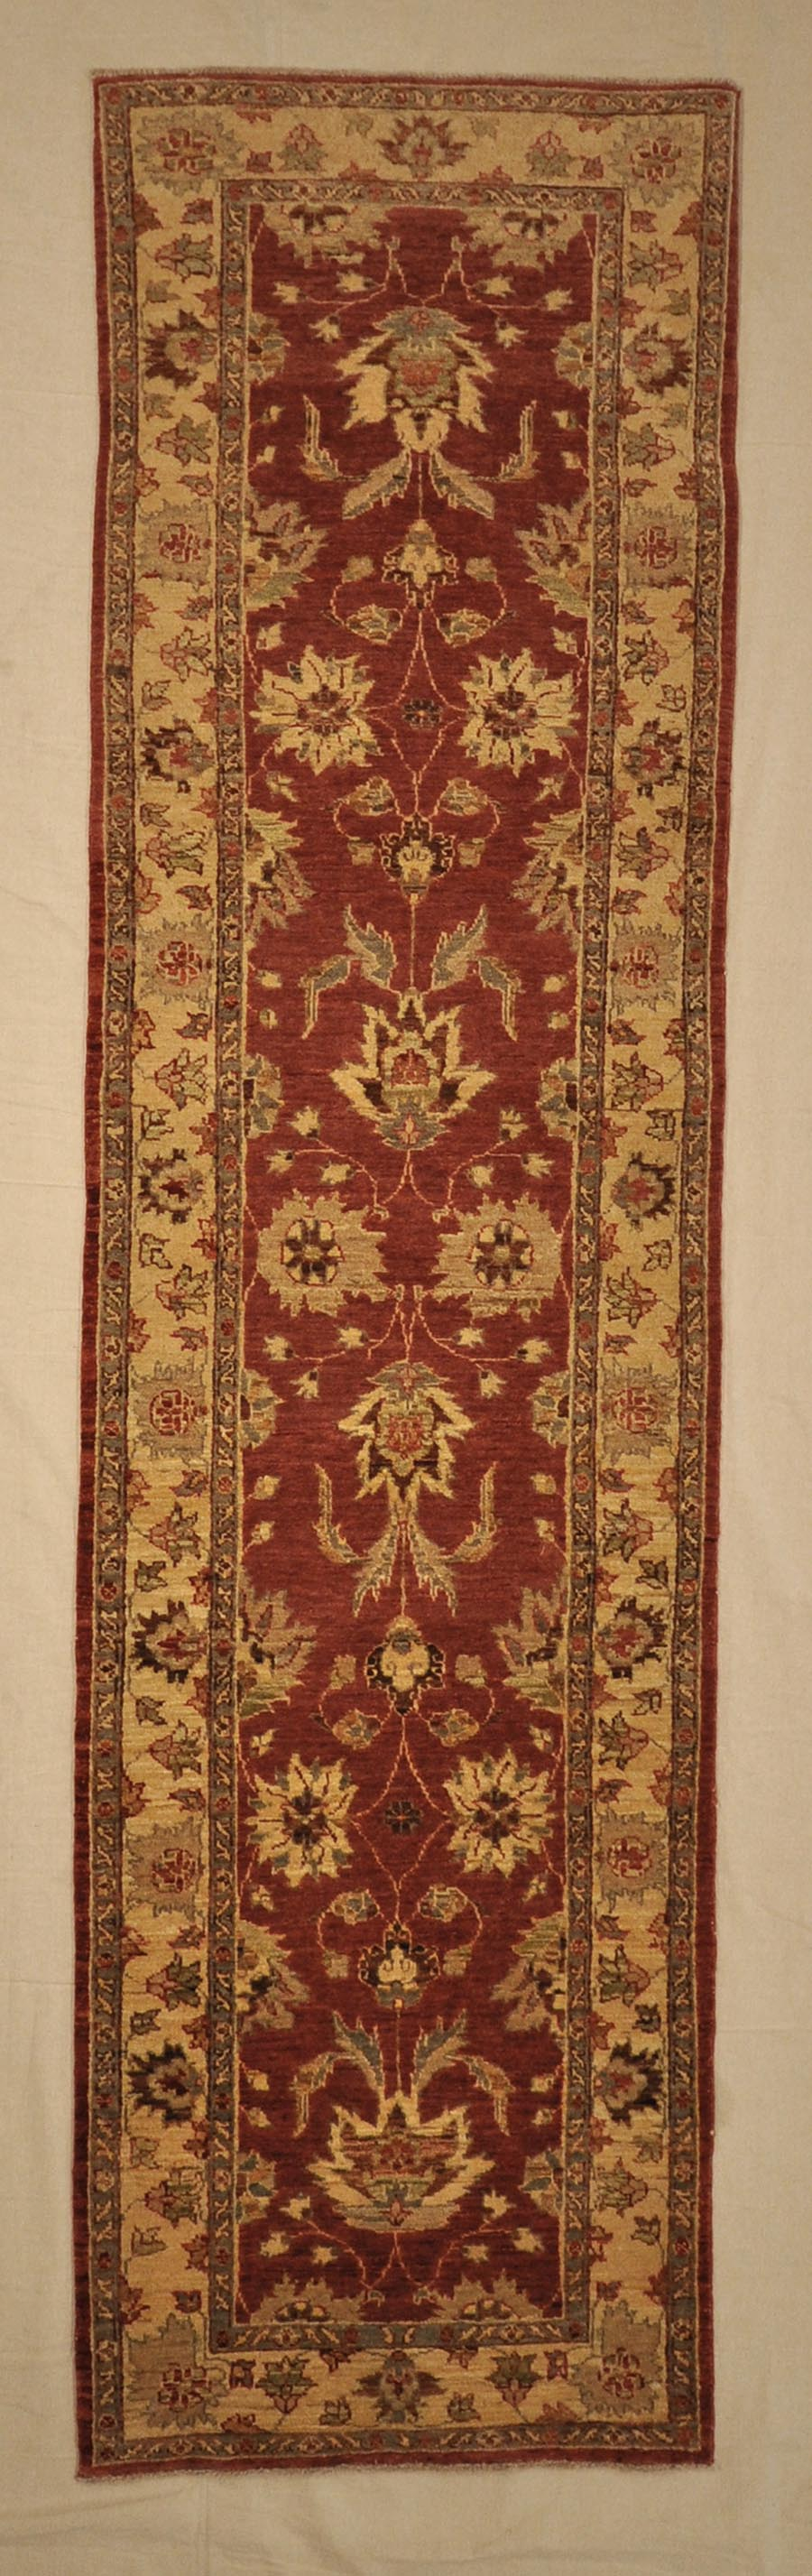 Ziegler & Co. Classic Runner | Rugs and More | Santa Barbara Design Center 35574